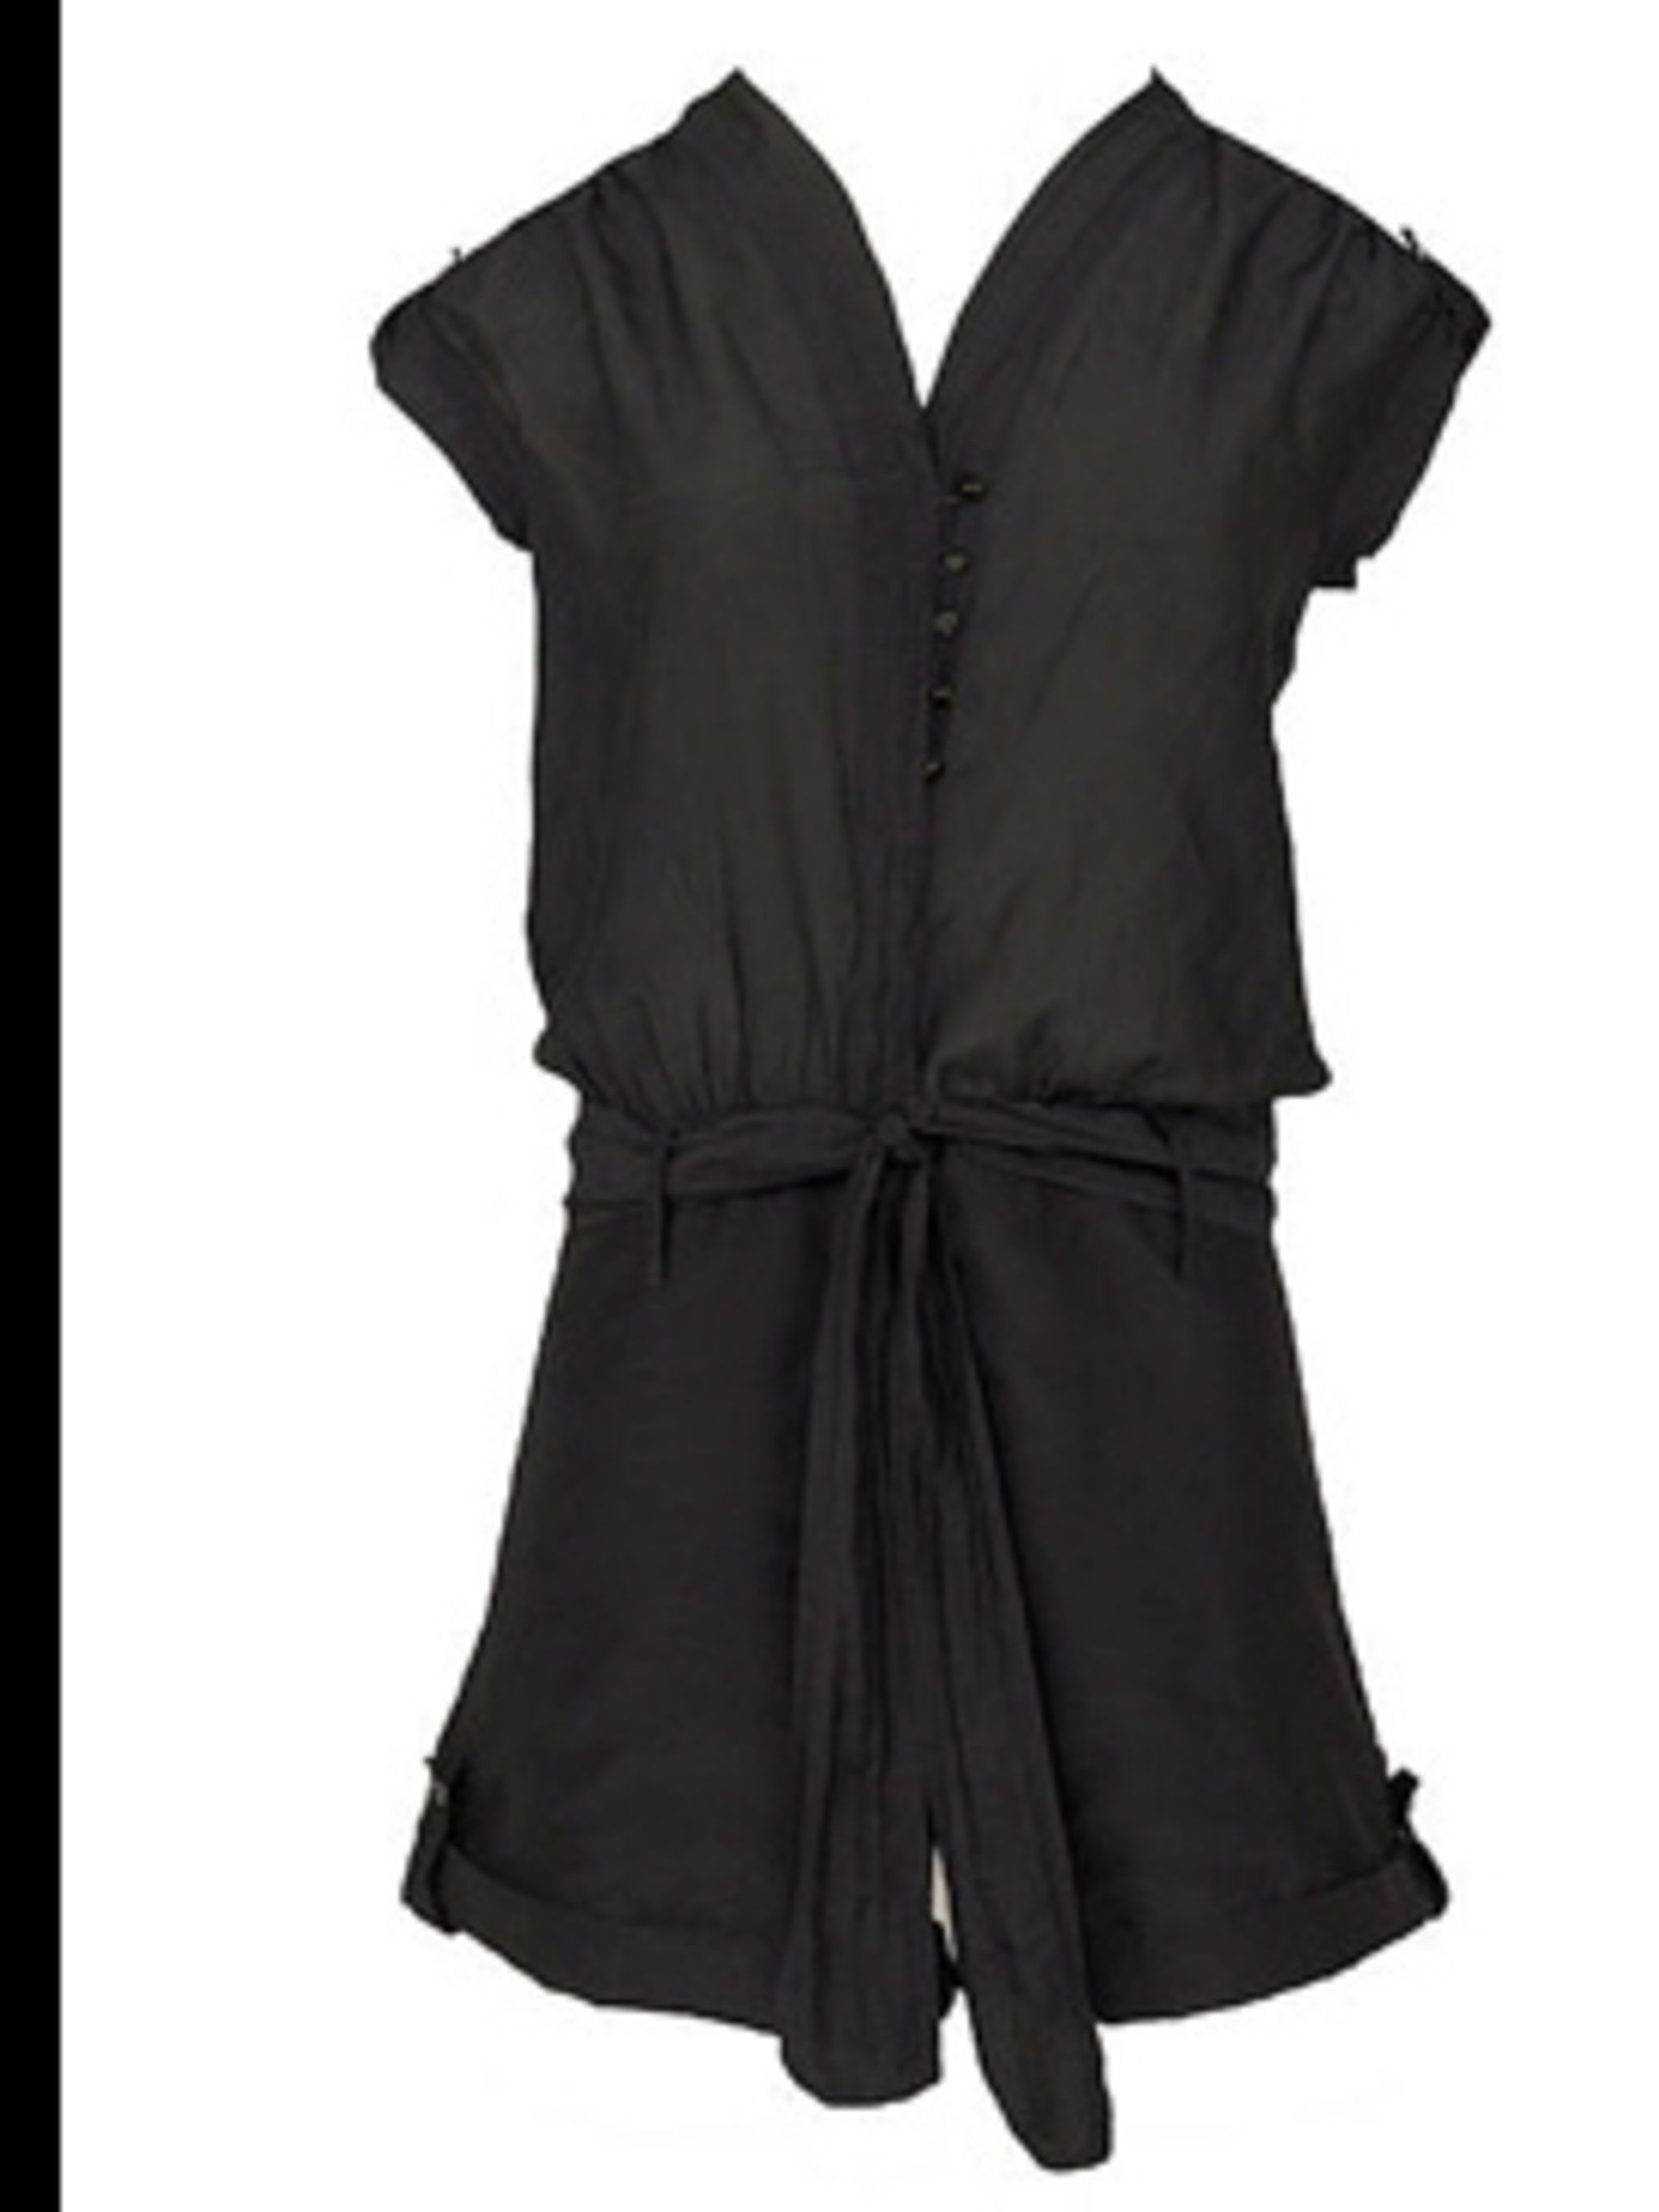 "<p>Playsuit, £95.23 by Young Fabulous and Broke at <a href=""http://www.bunnyhug.co.uk/fashionshop/gbu0-prodshow/Young_Fabulous_and_Broke_Silk_Cotton_Mix_Black_Playsuit.html"">Bunnyhug</a></p>"